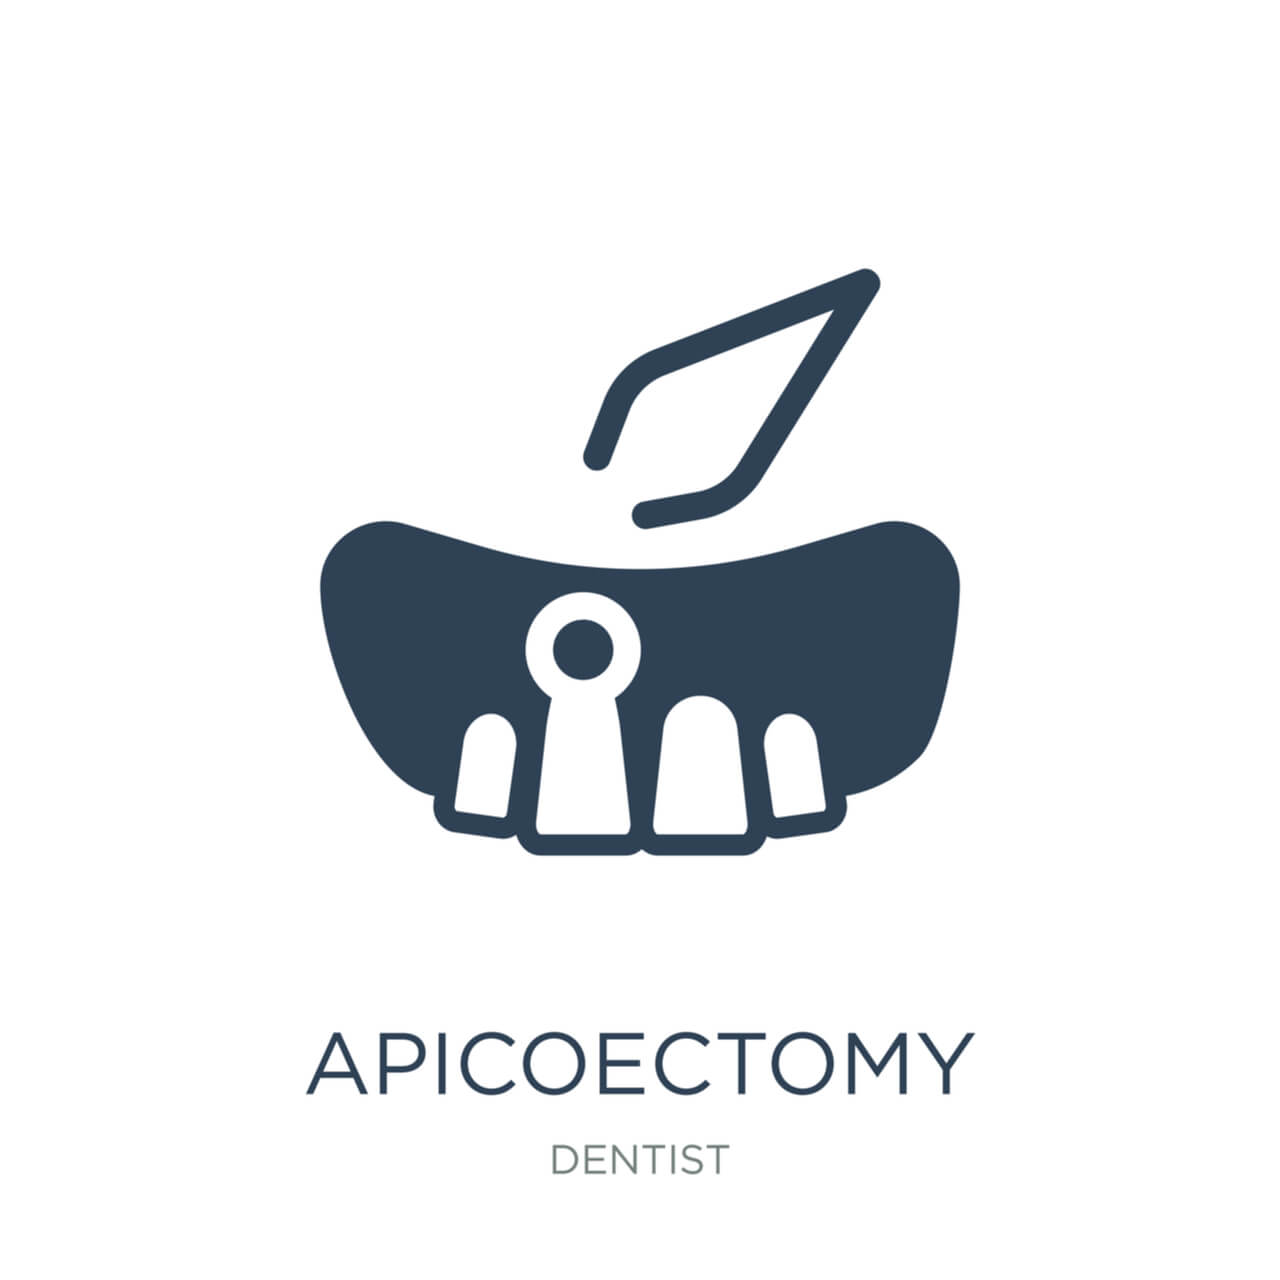 Apicoectomy Procedure